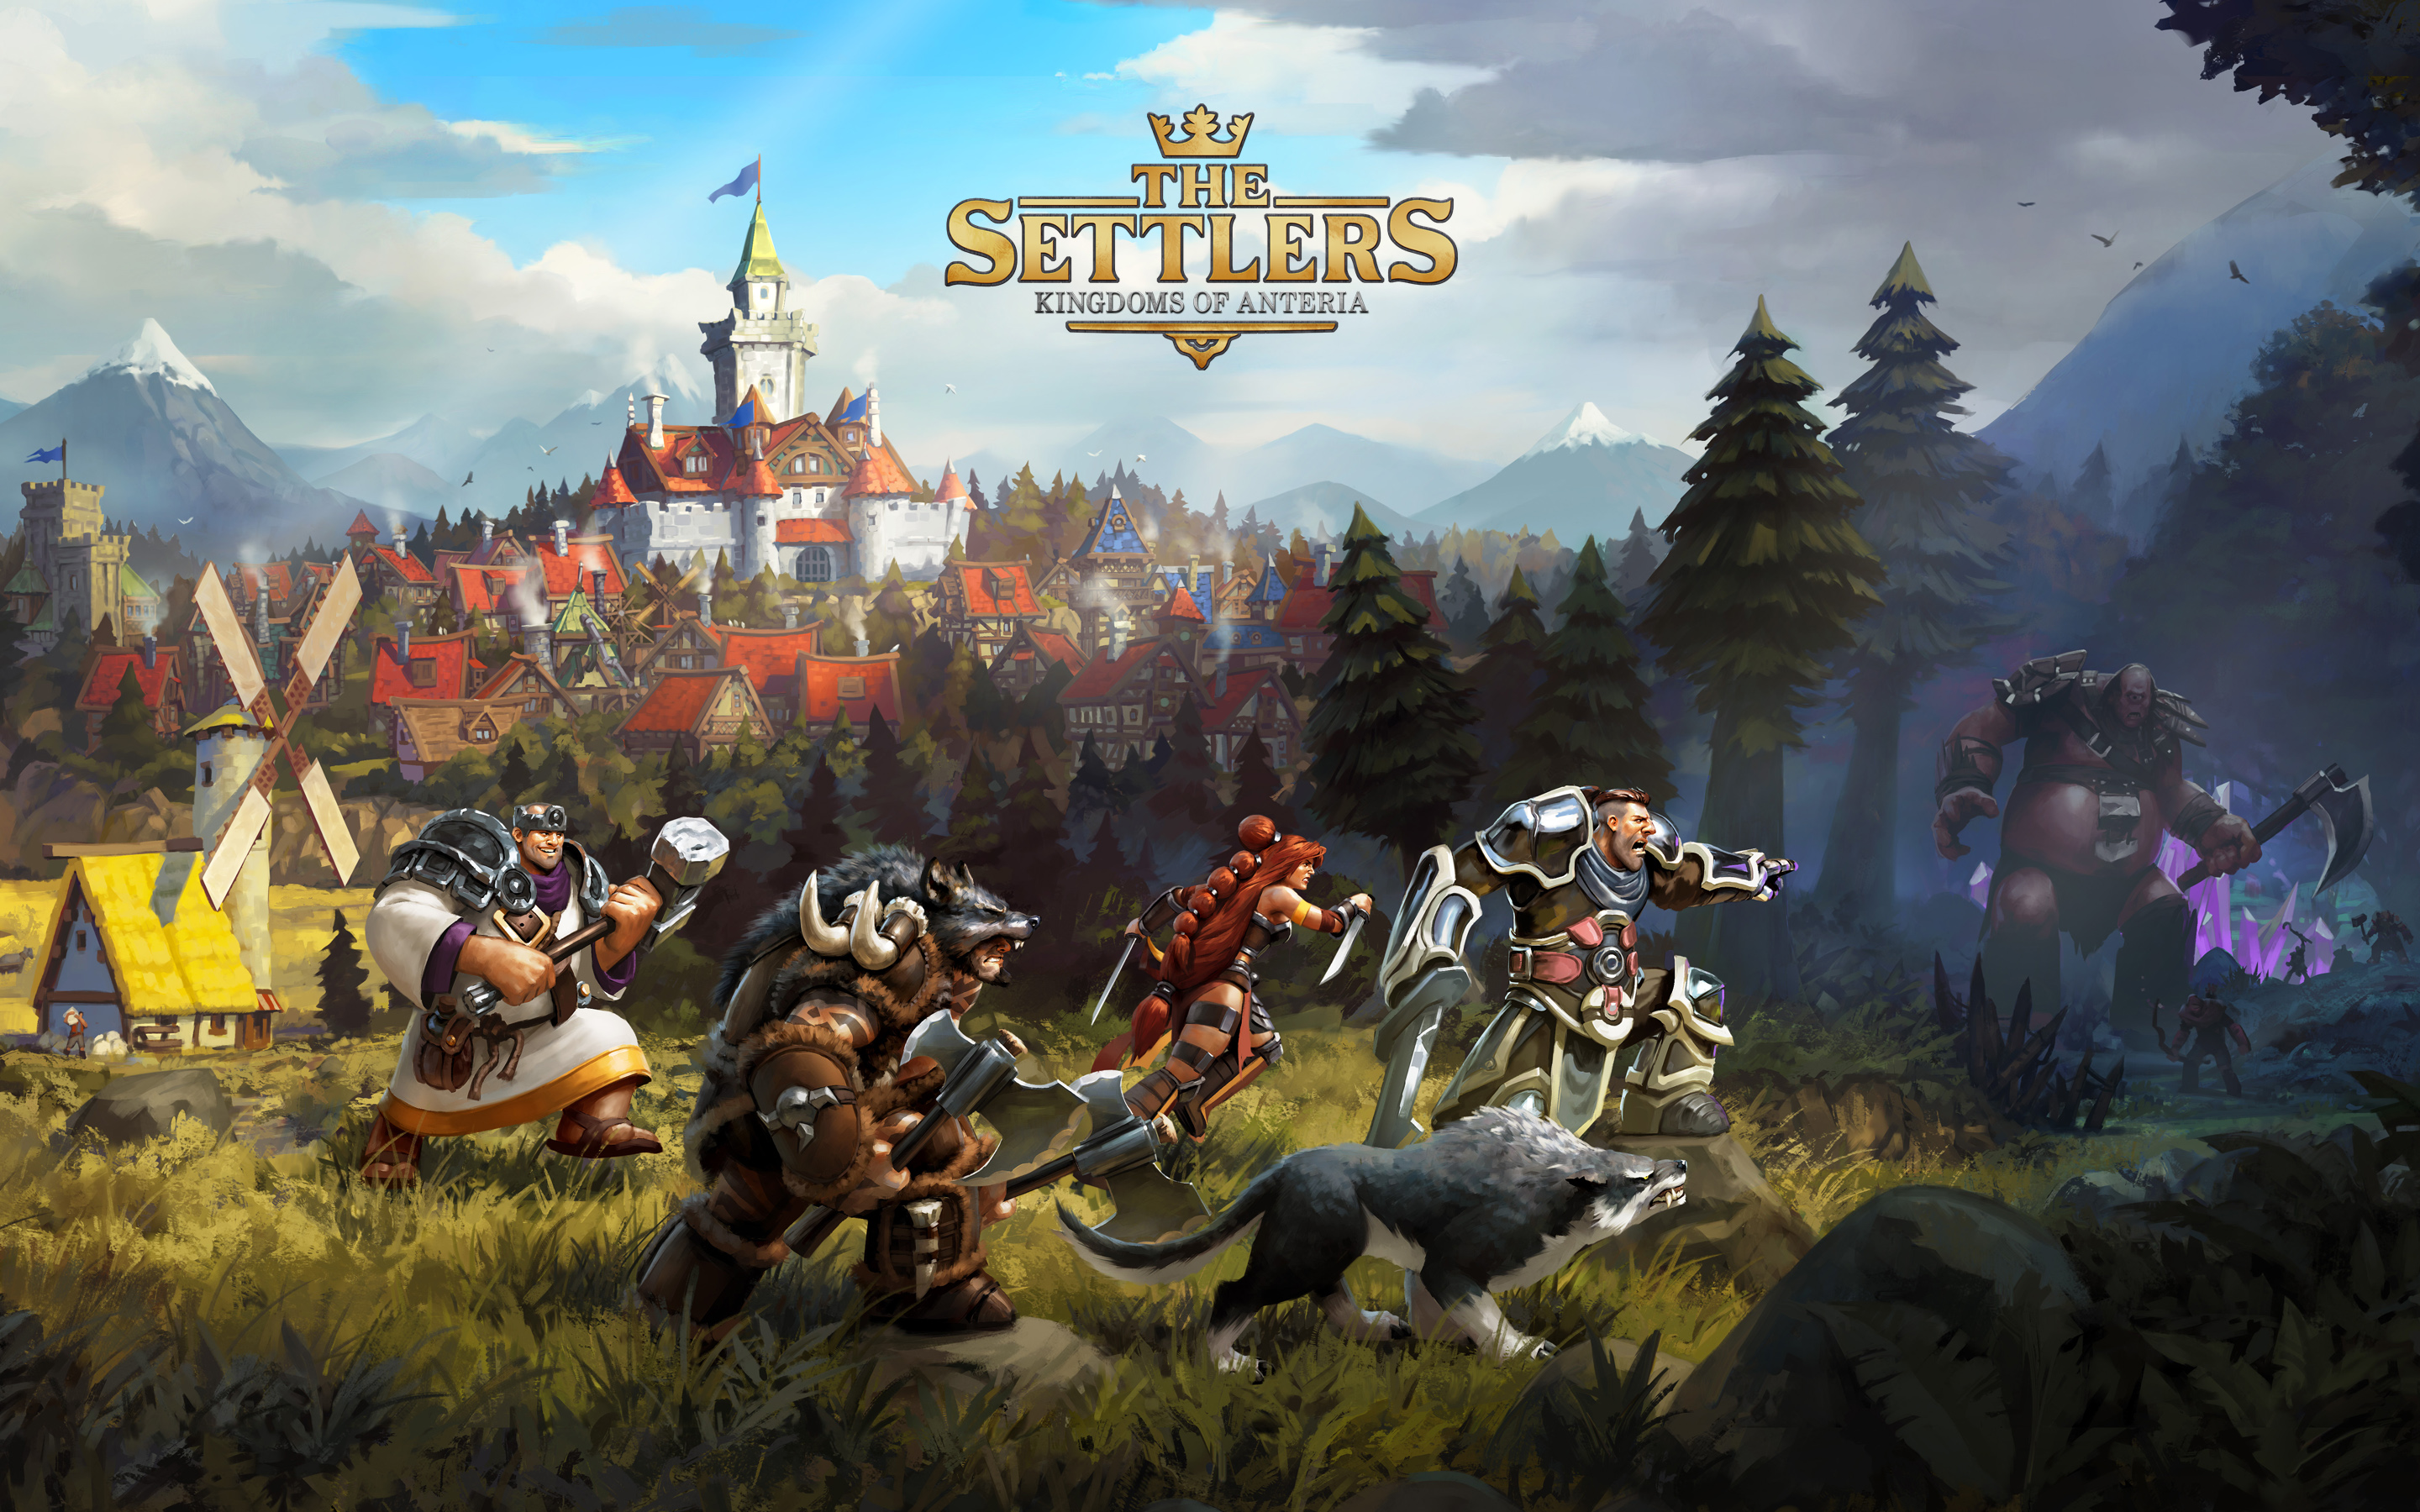 HD Wallpapers The Settlers Kingdoms of Anteria